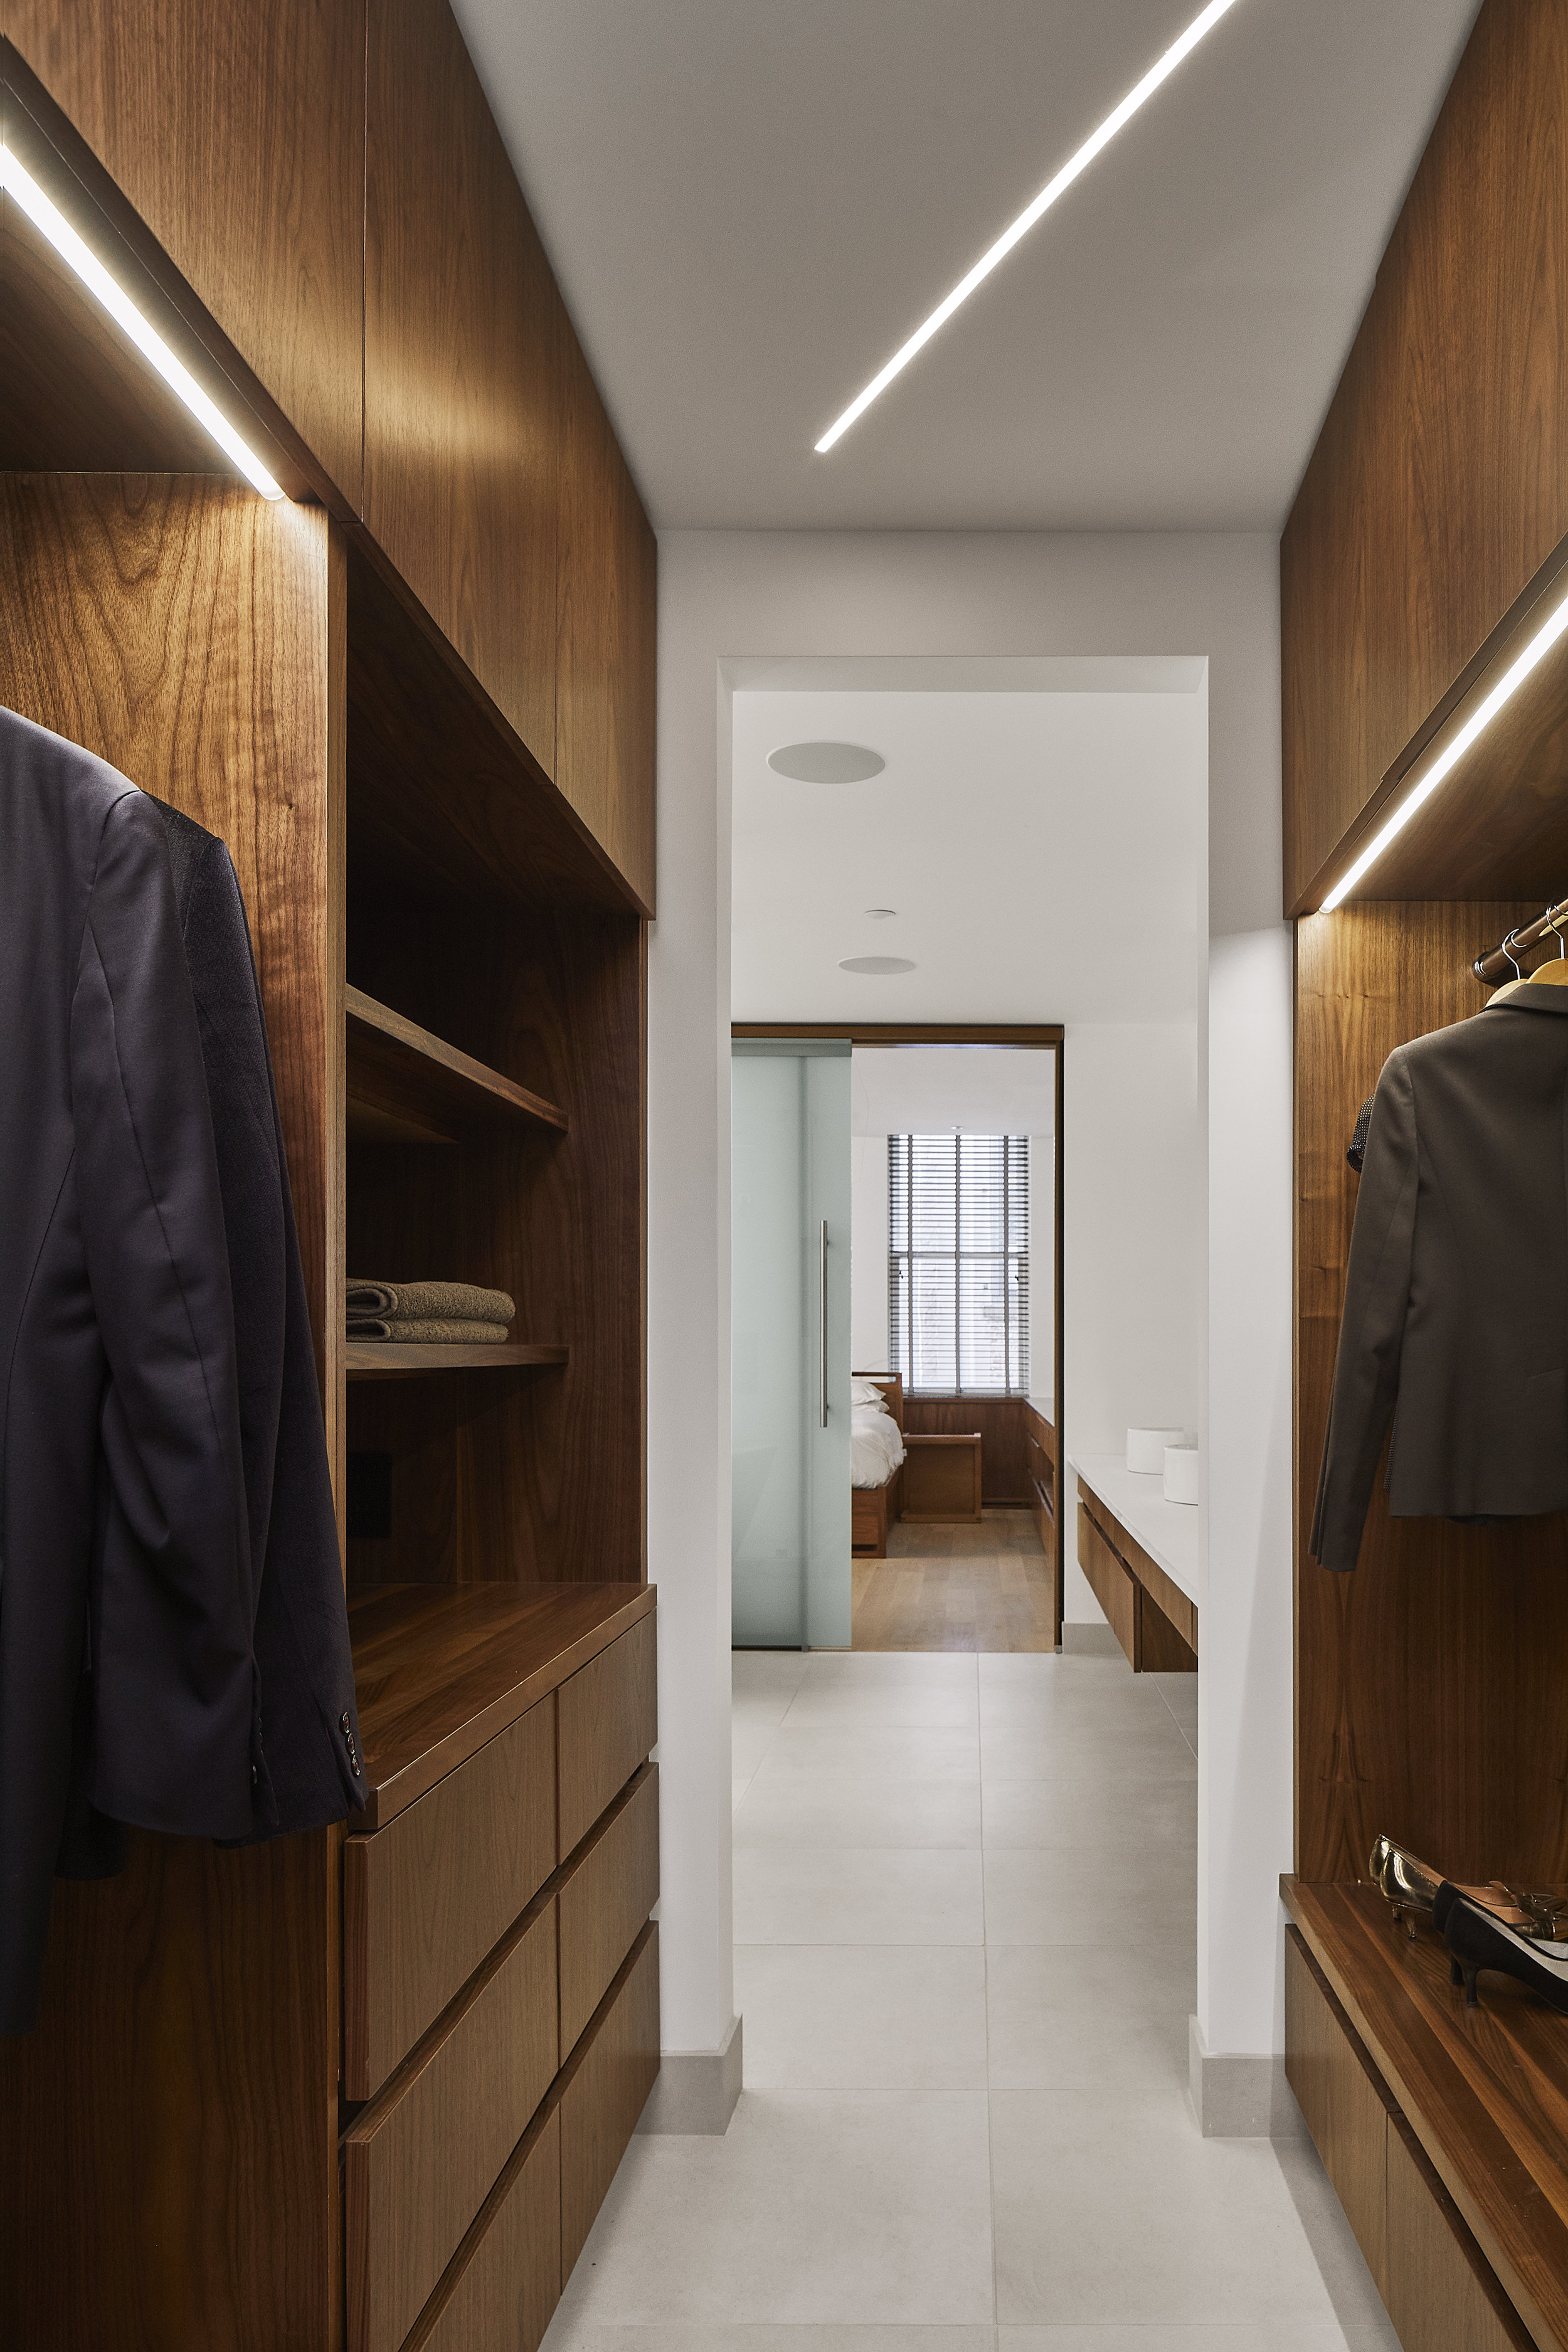 turkel_design_modern_prefab_home_soho_loft_closet_storage_cabinetry.jpg